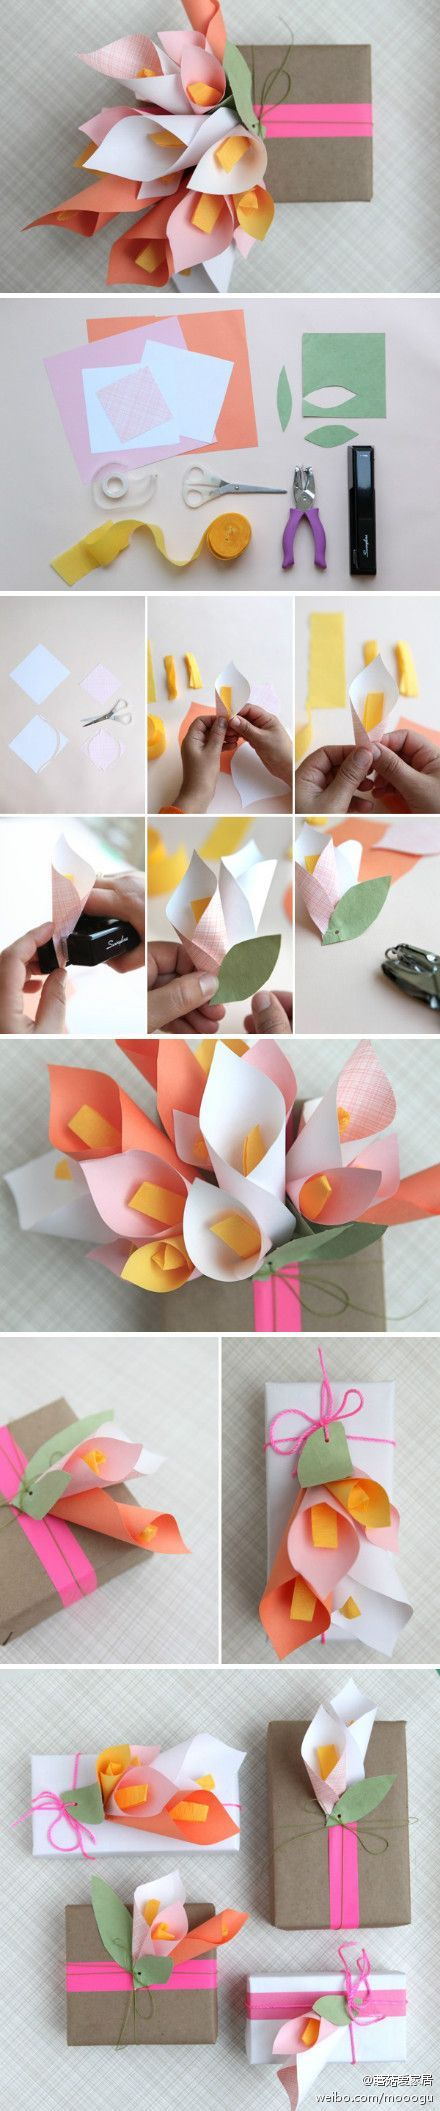 How to make a paper flower bouquet pictures photos and images for how to make a paper flower bouquet izmirmasajfo